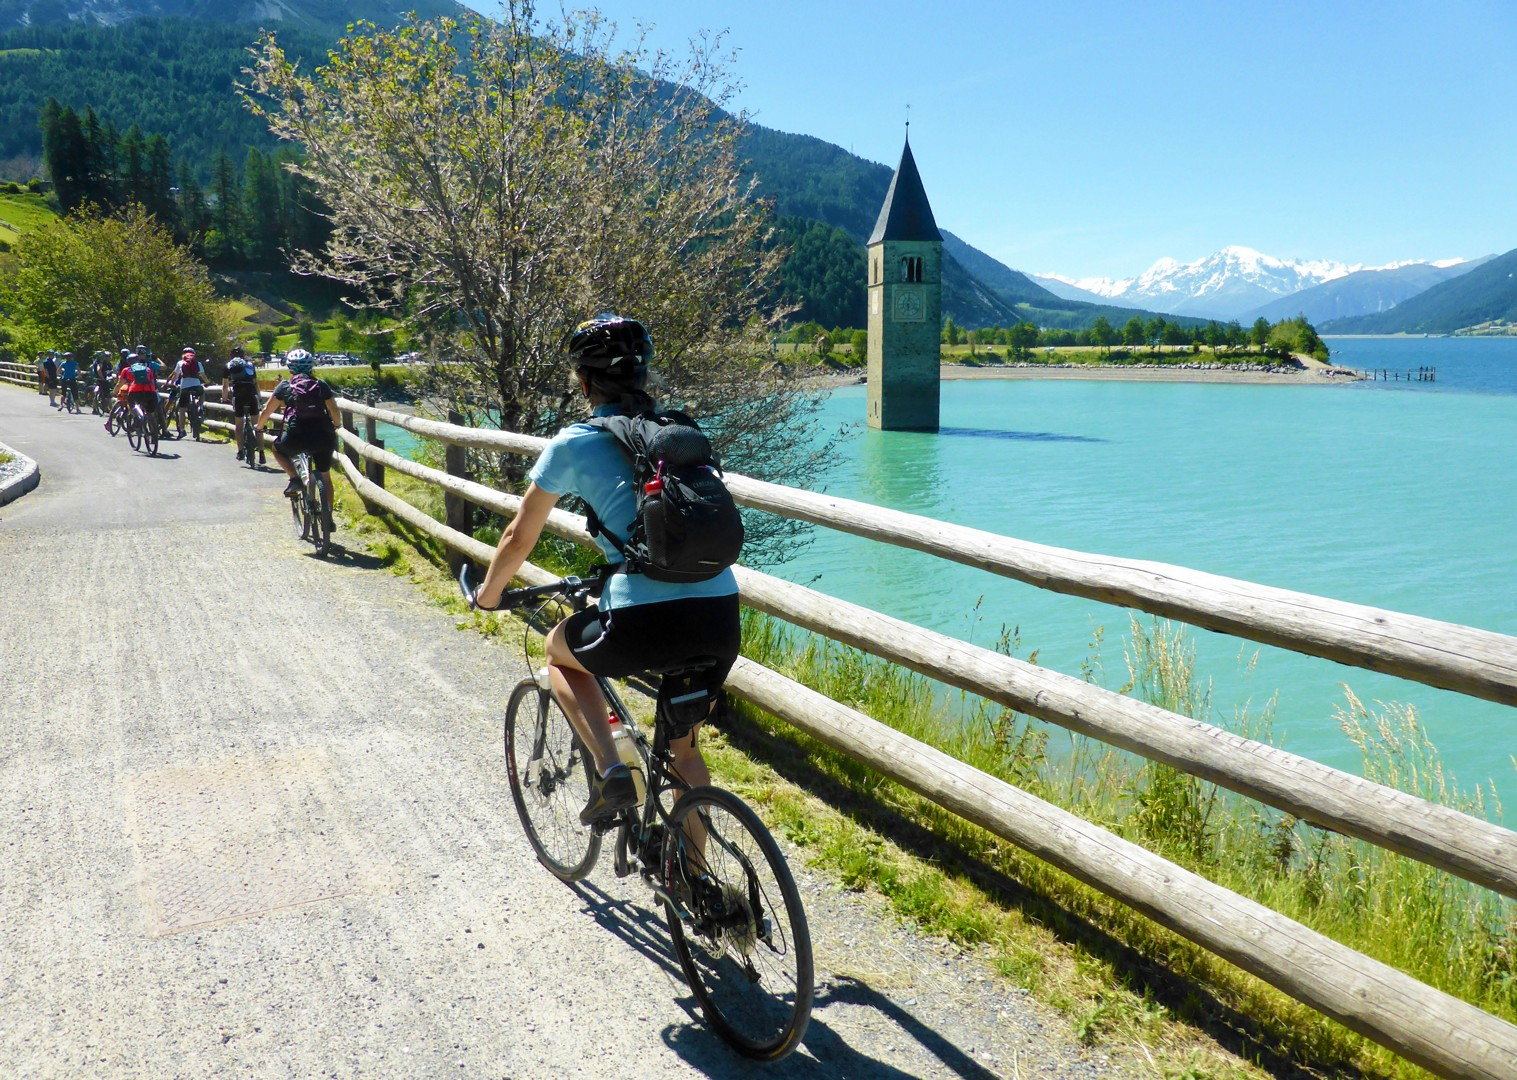 la-via-claudia-guided-cycling-holiday-river-etsch.jpg - Austria and Italy - La Via Claudia - Guided Leisure Cycling Holiday - Italia Leisure and Family Cycling